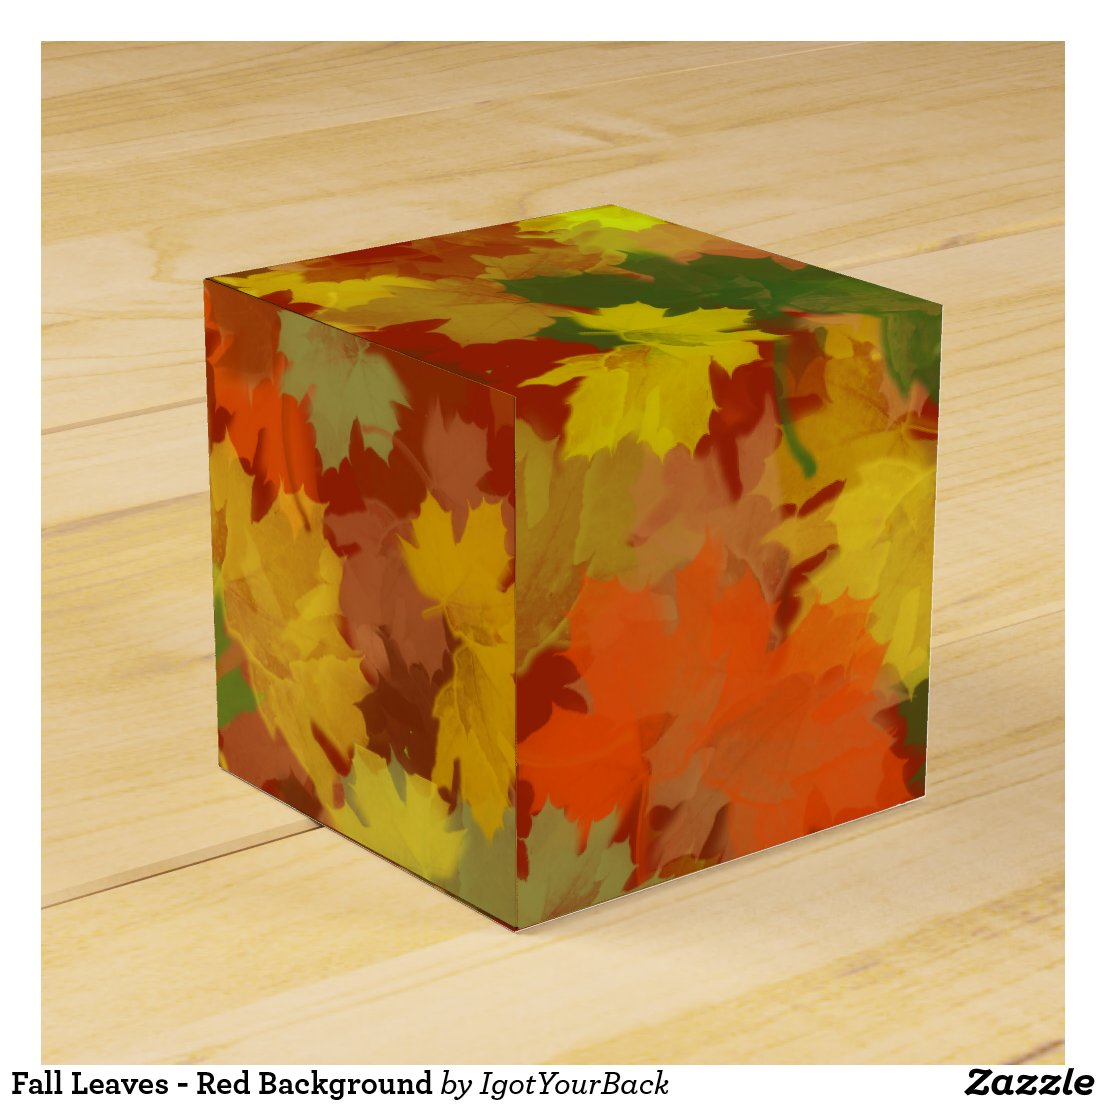 Fall Leaves - Red Background Favor Box